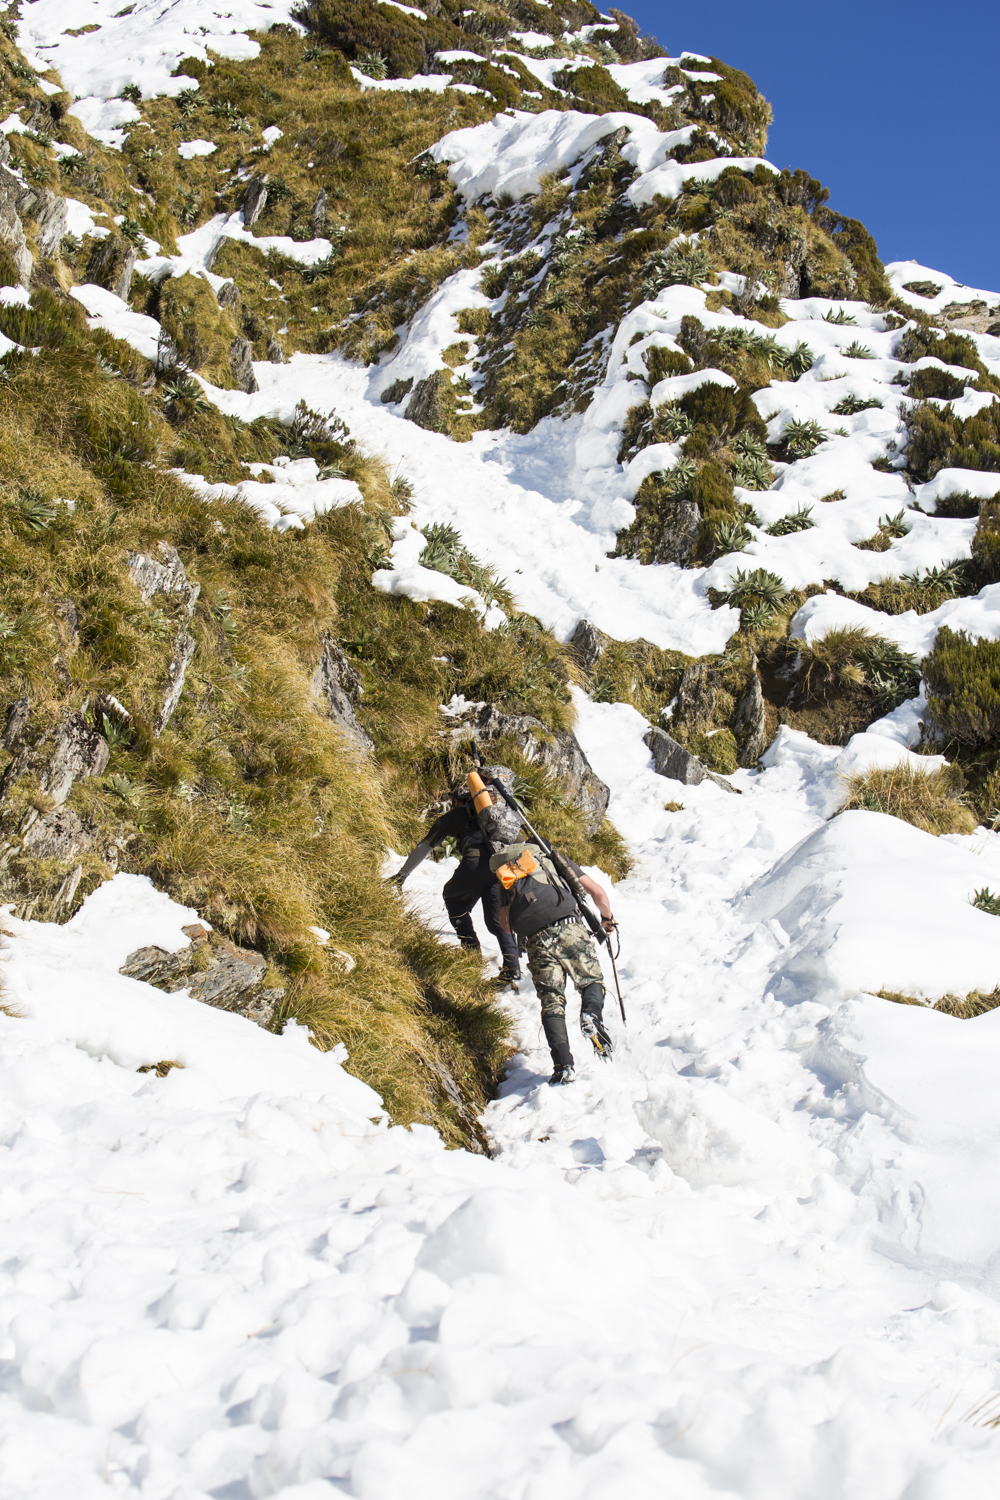 climbing steep broken snow and tussock while hunting tahr